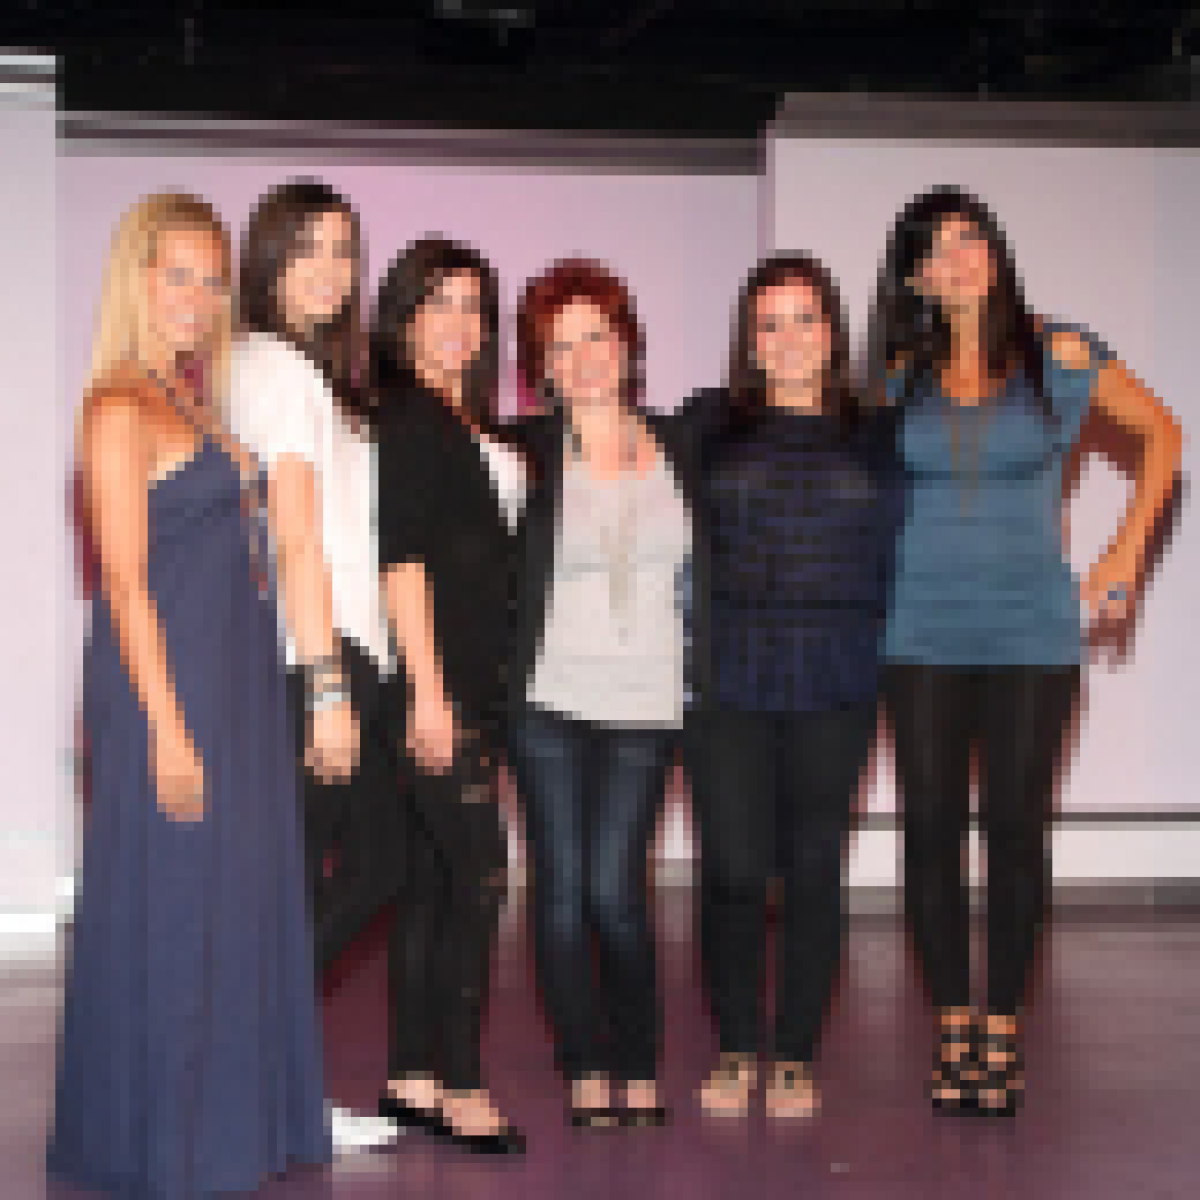 PHOTO FLASH: The Real Housewives Of New Jersey Cast In